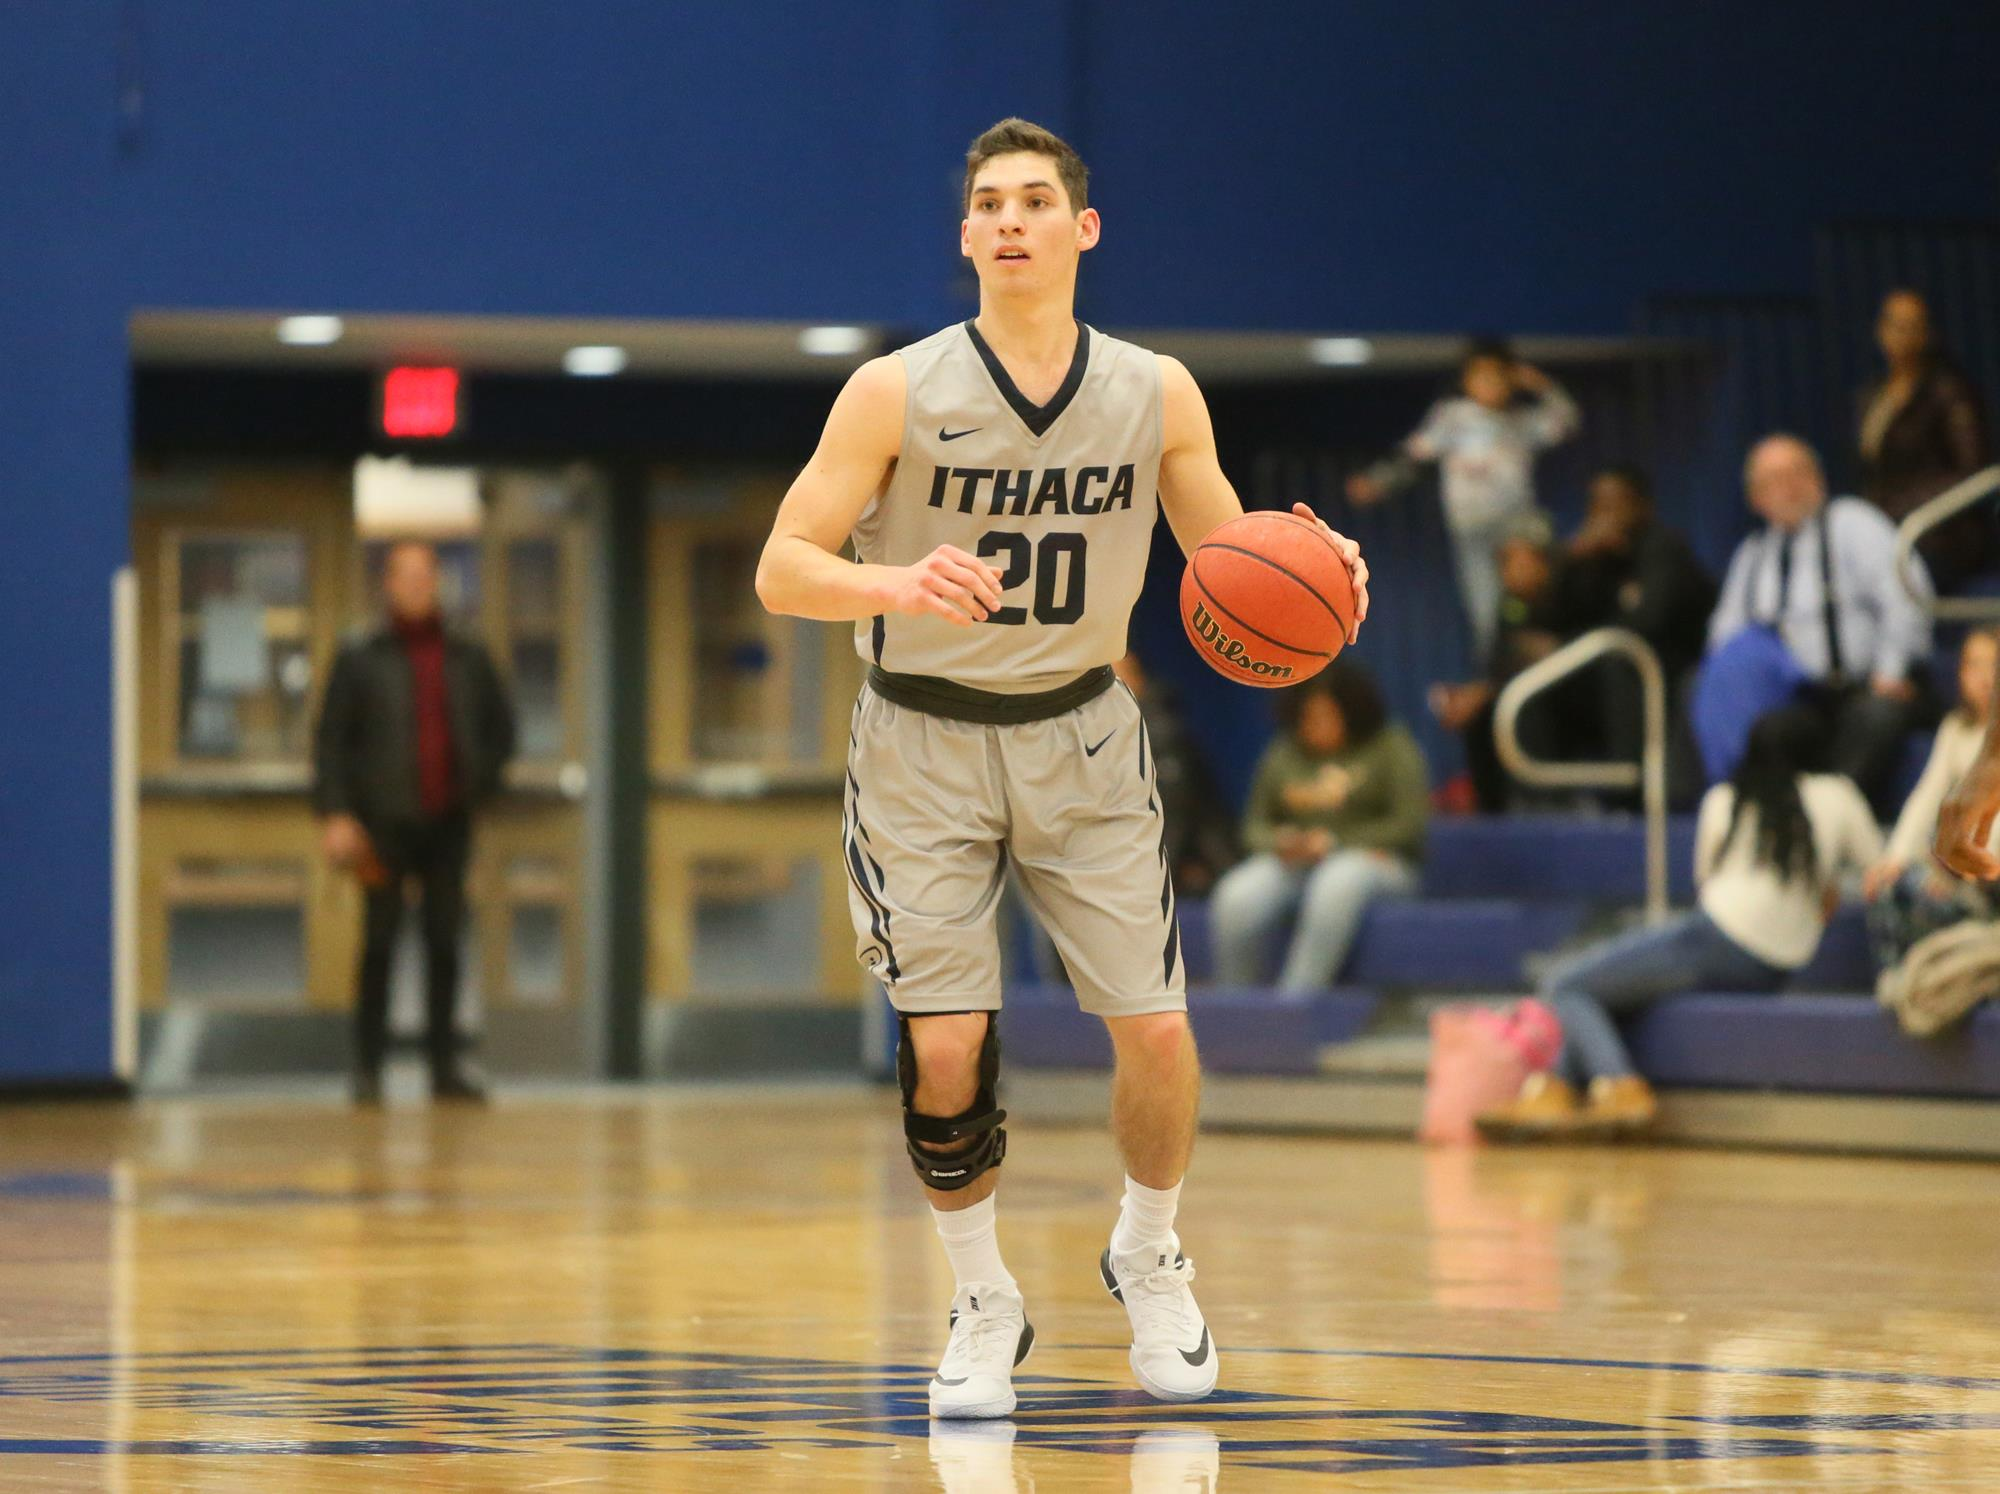 Ithaca bombers mens basketball 2018 schedule stats team leaders hobart takes down mens basketball 91 81 publicscrutiny Choice Image